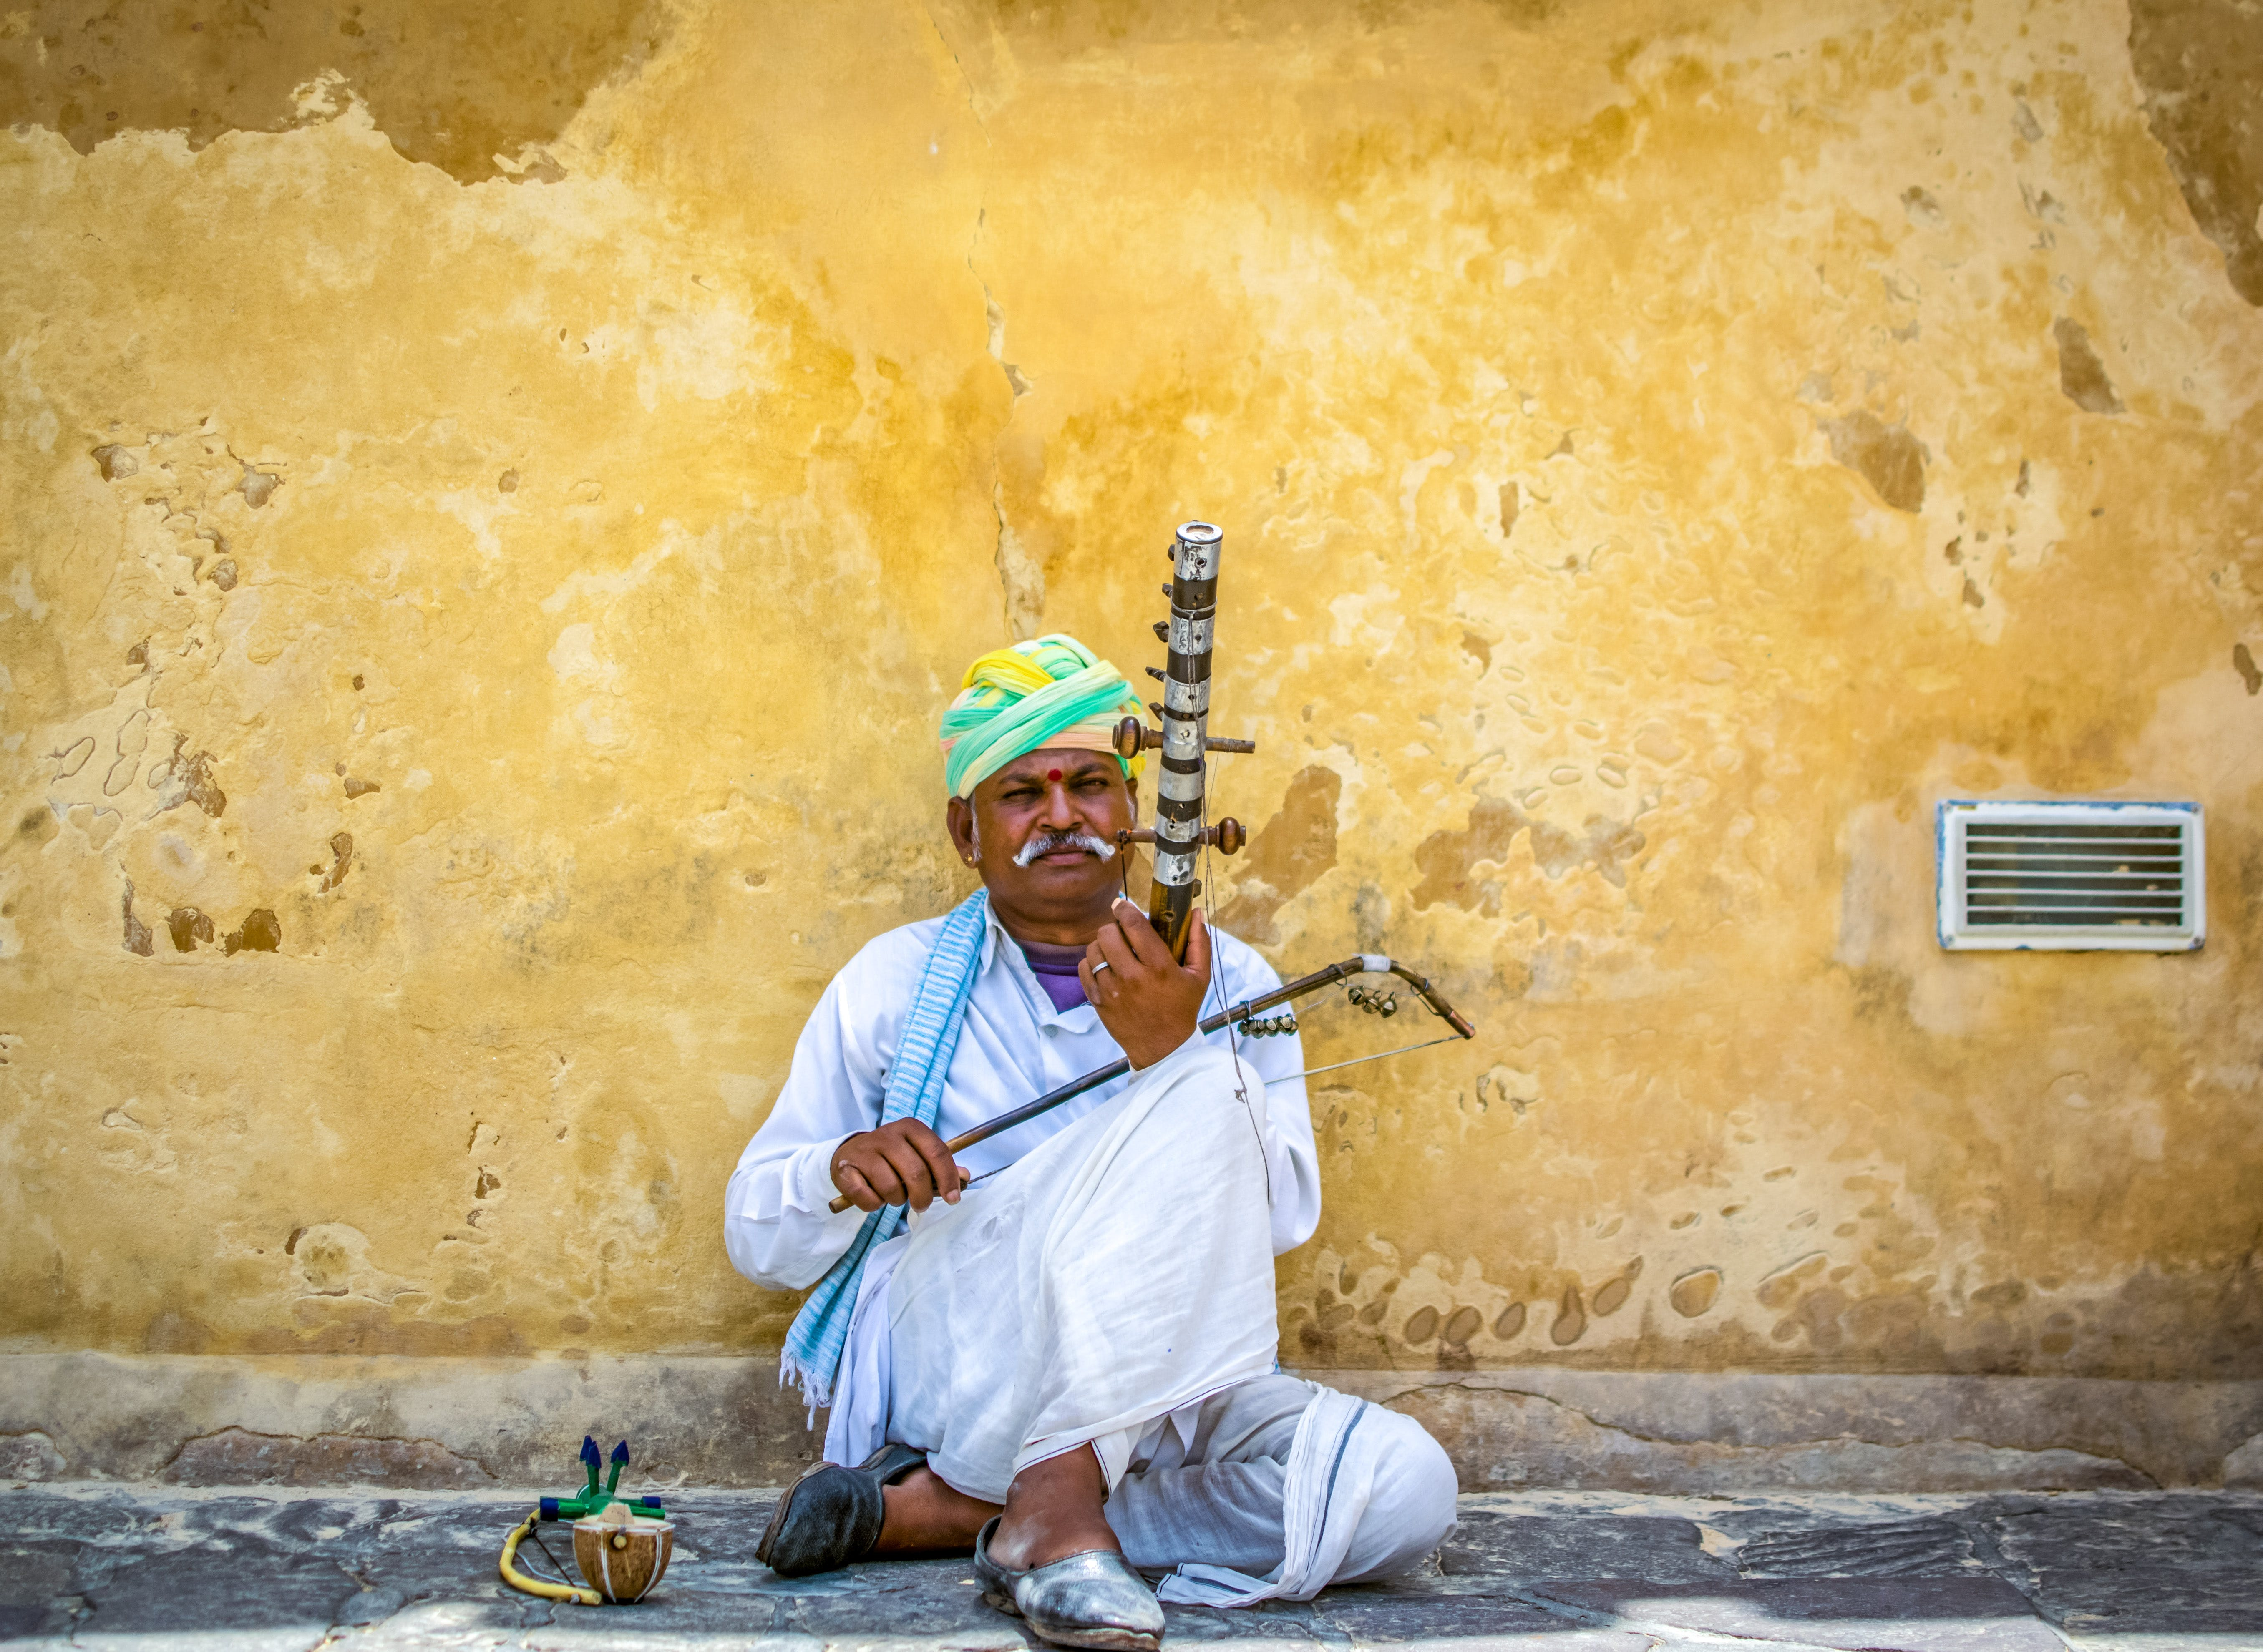 Man Holding String Instrument While Sitting on Concrete Pavement